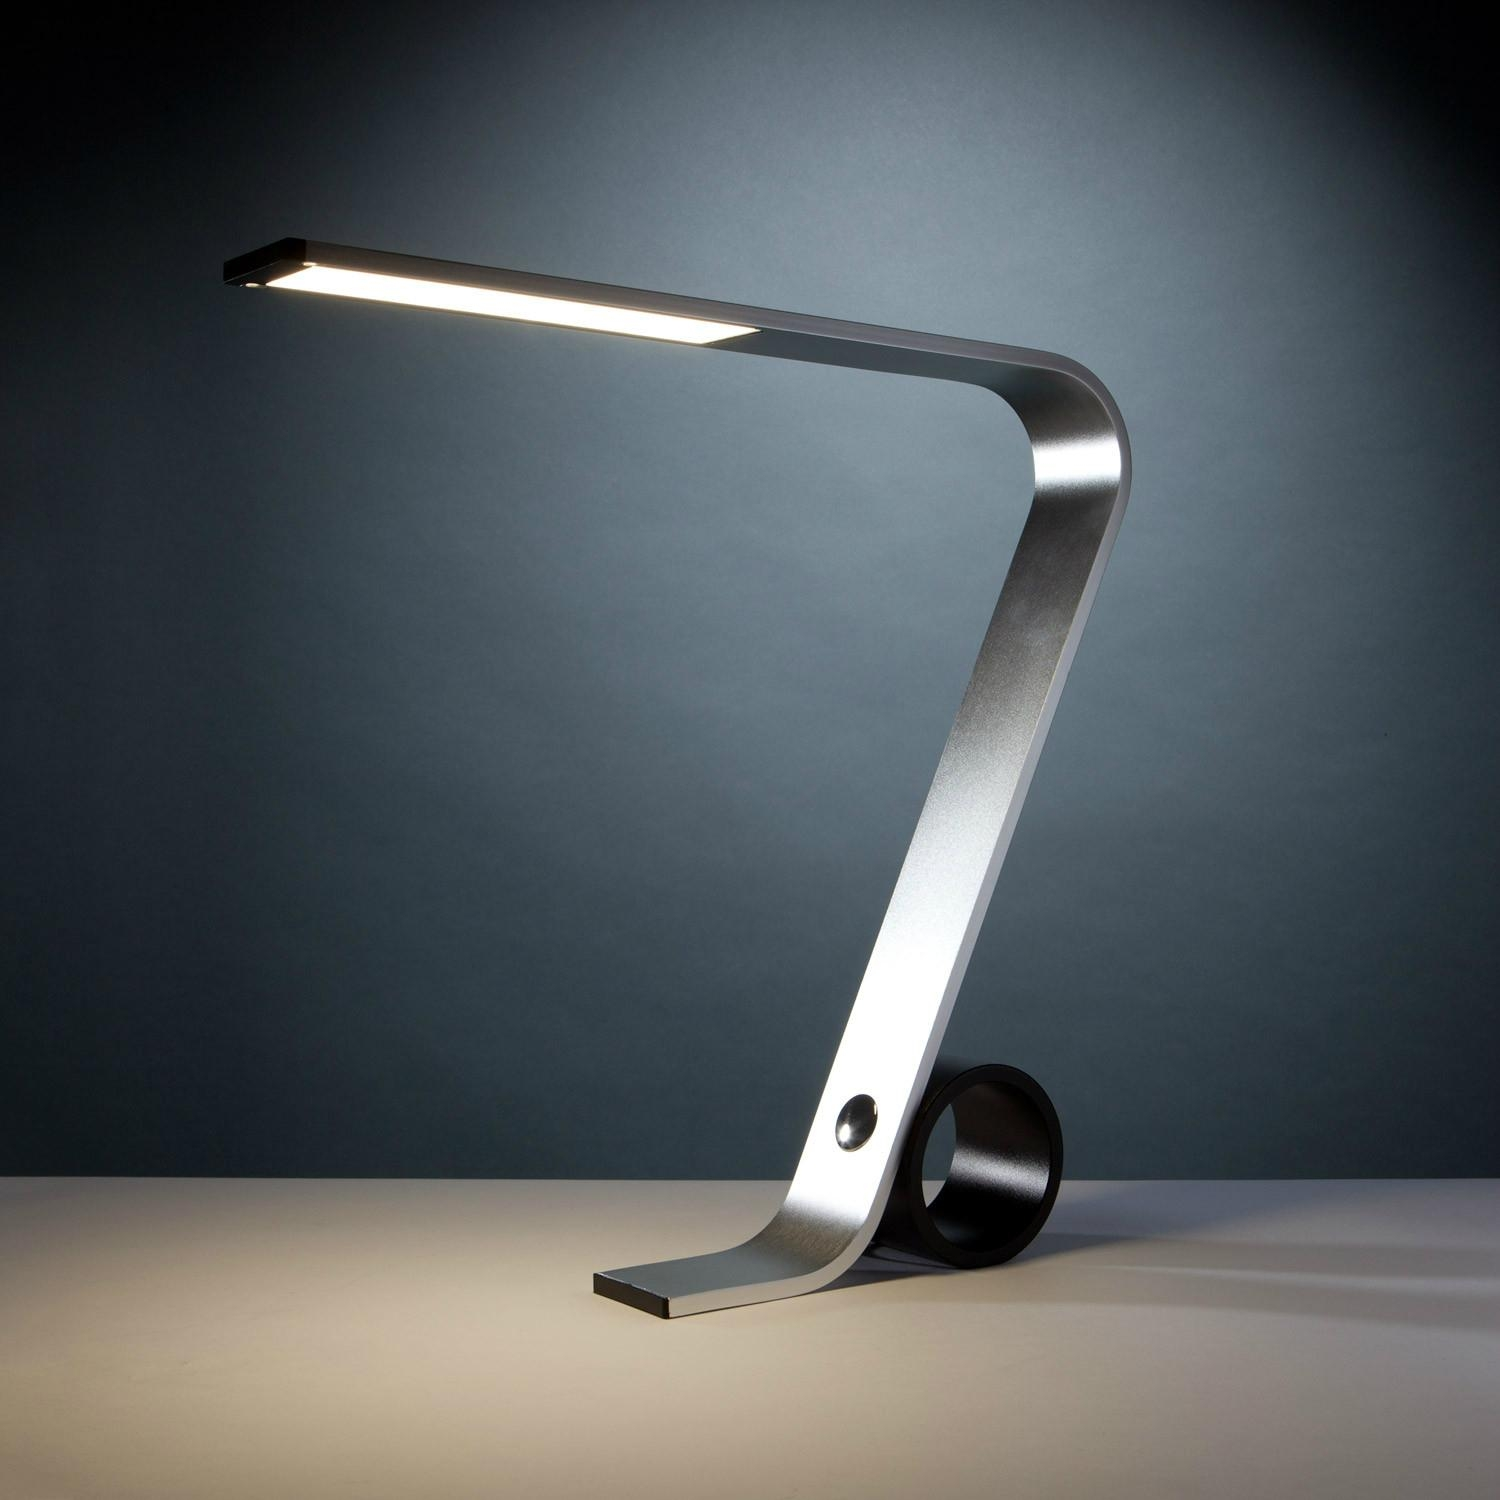 Led Desk Lamp With Usb Port Amp Modern Design Yt006